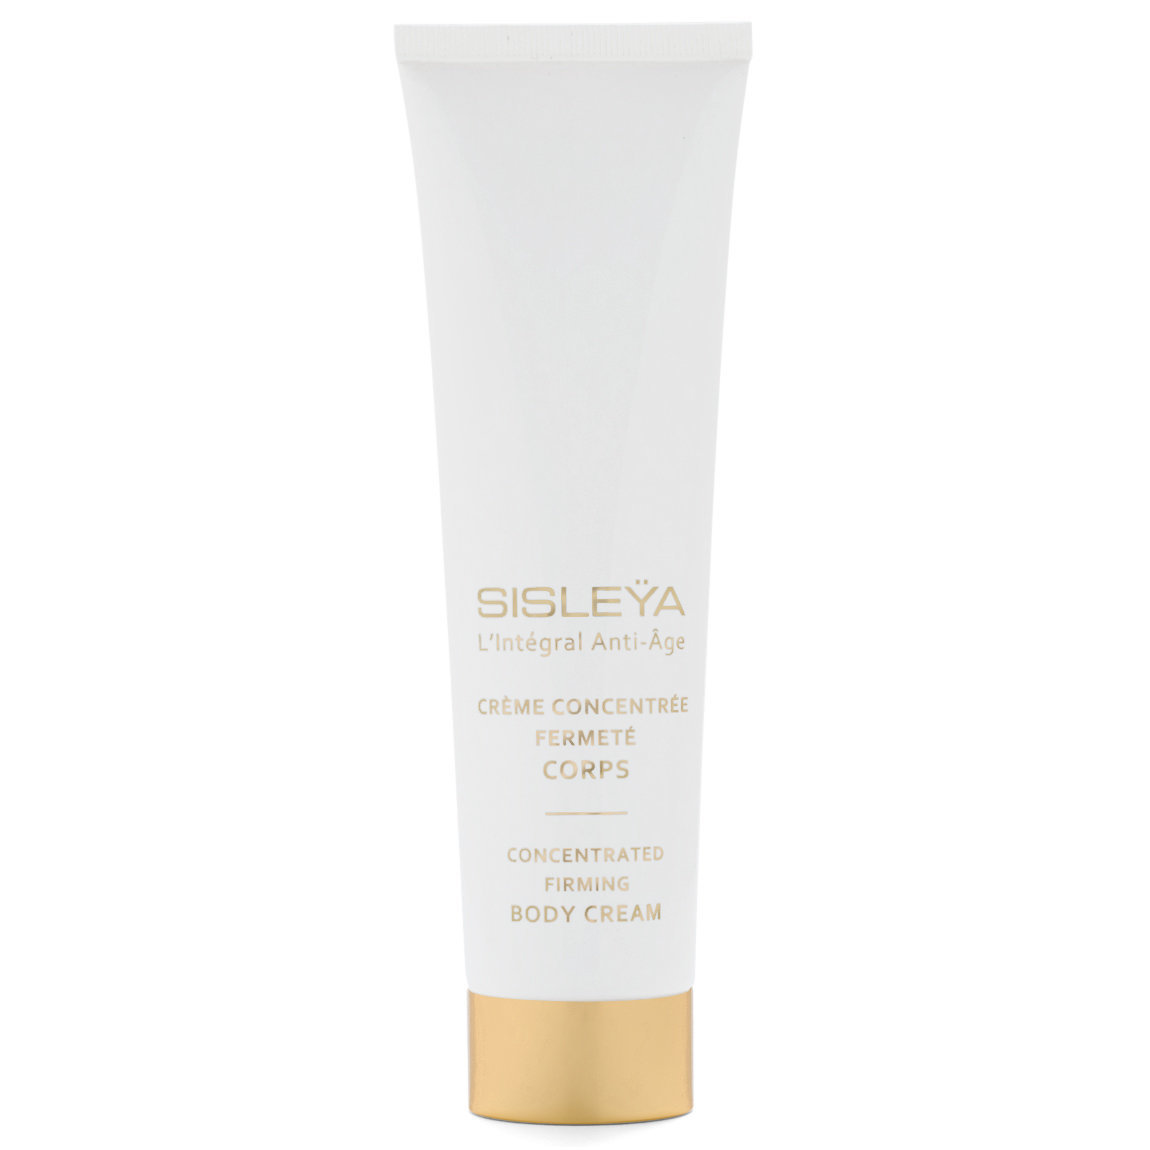 Sisley-Paris Sislëya L'Integral Anti-Age Concentrated Firming Body Cream alternative view 1 - product swatch.